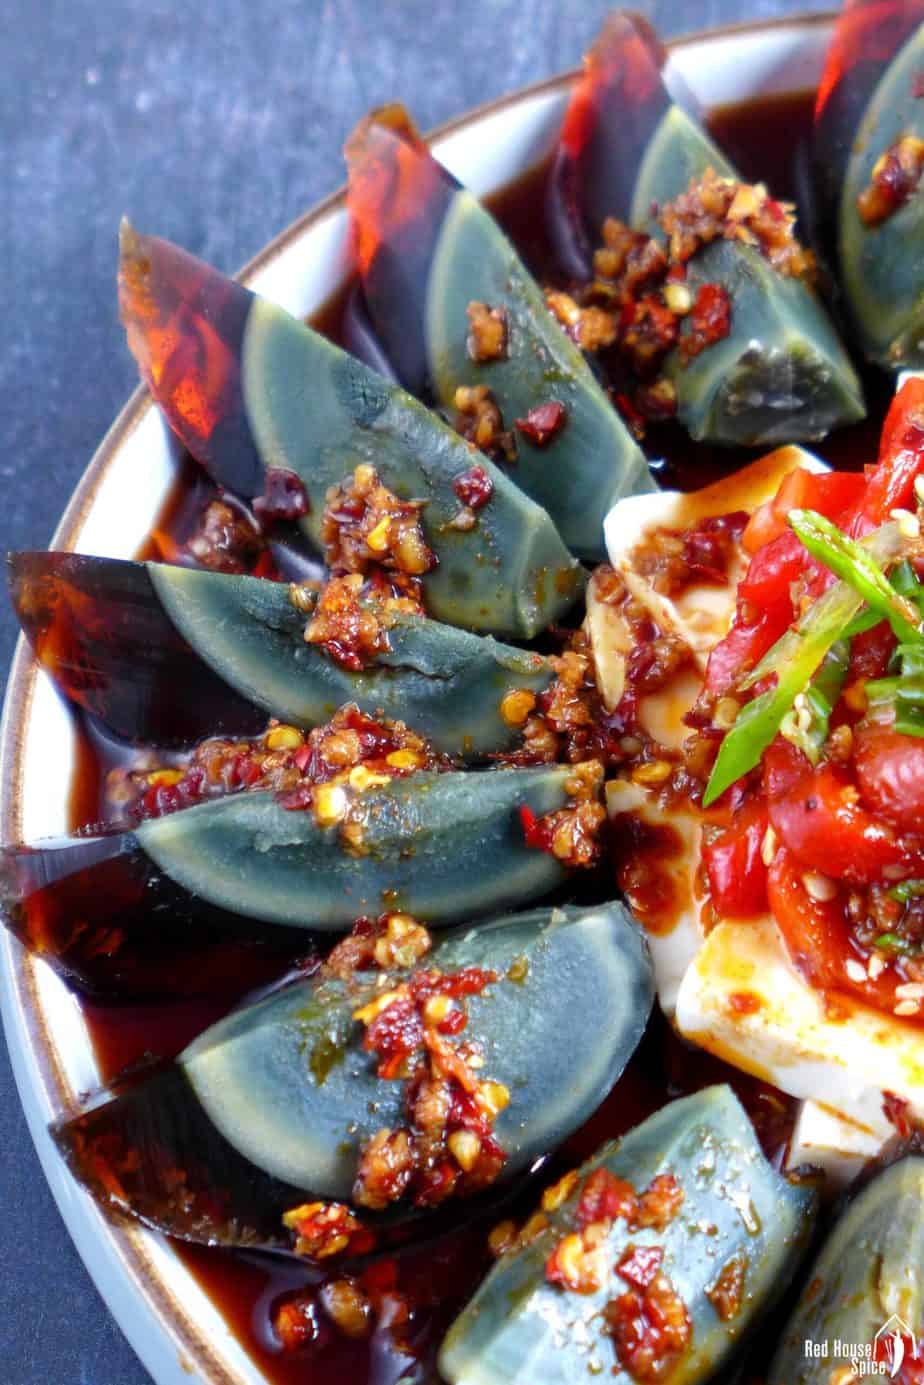 Century egg wedges with spicy dressing